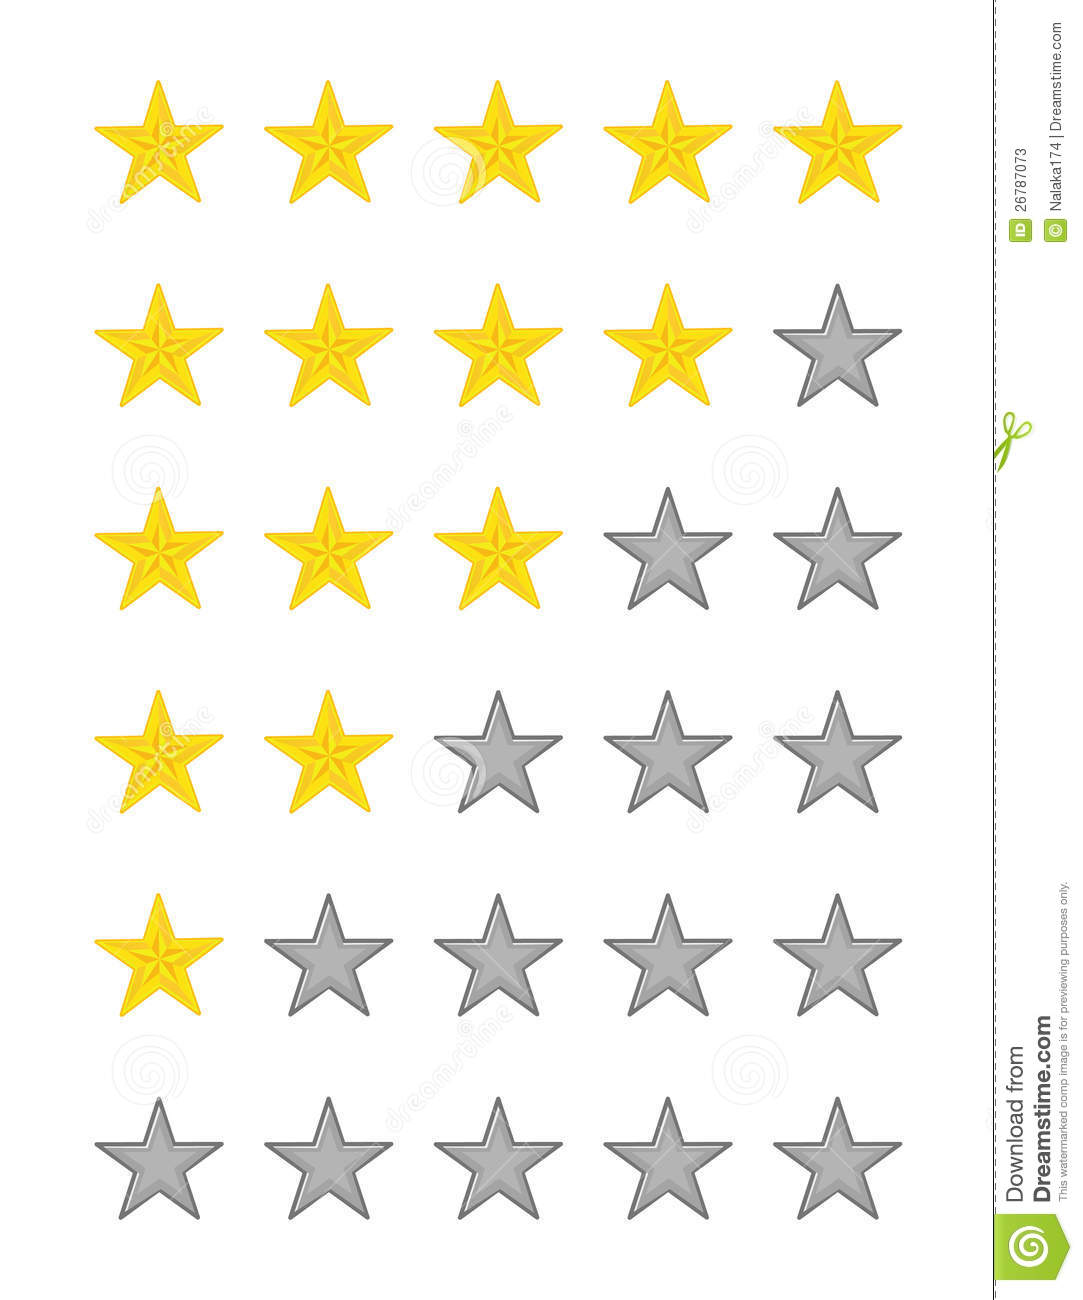 Star Quality Rating Stock Vector. Illustration Of Goal